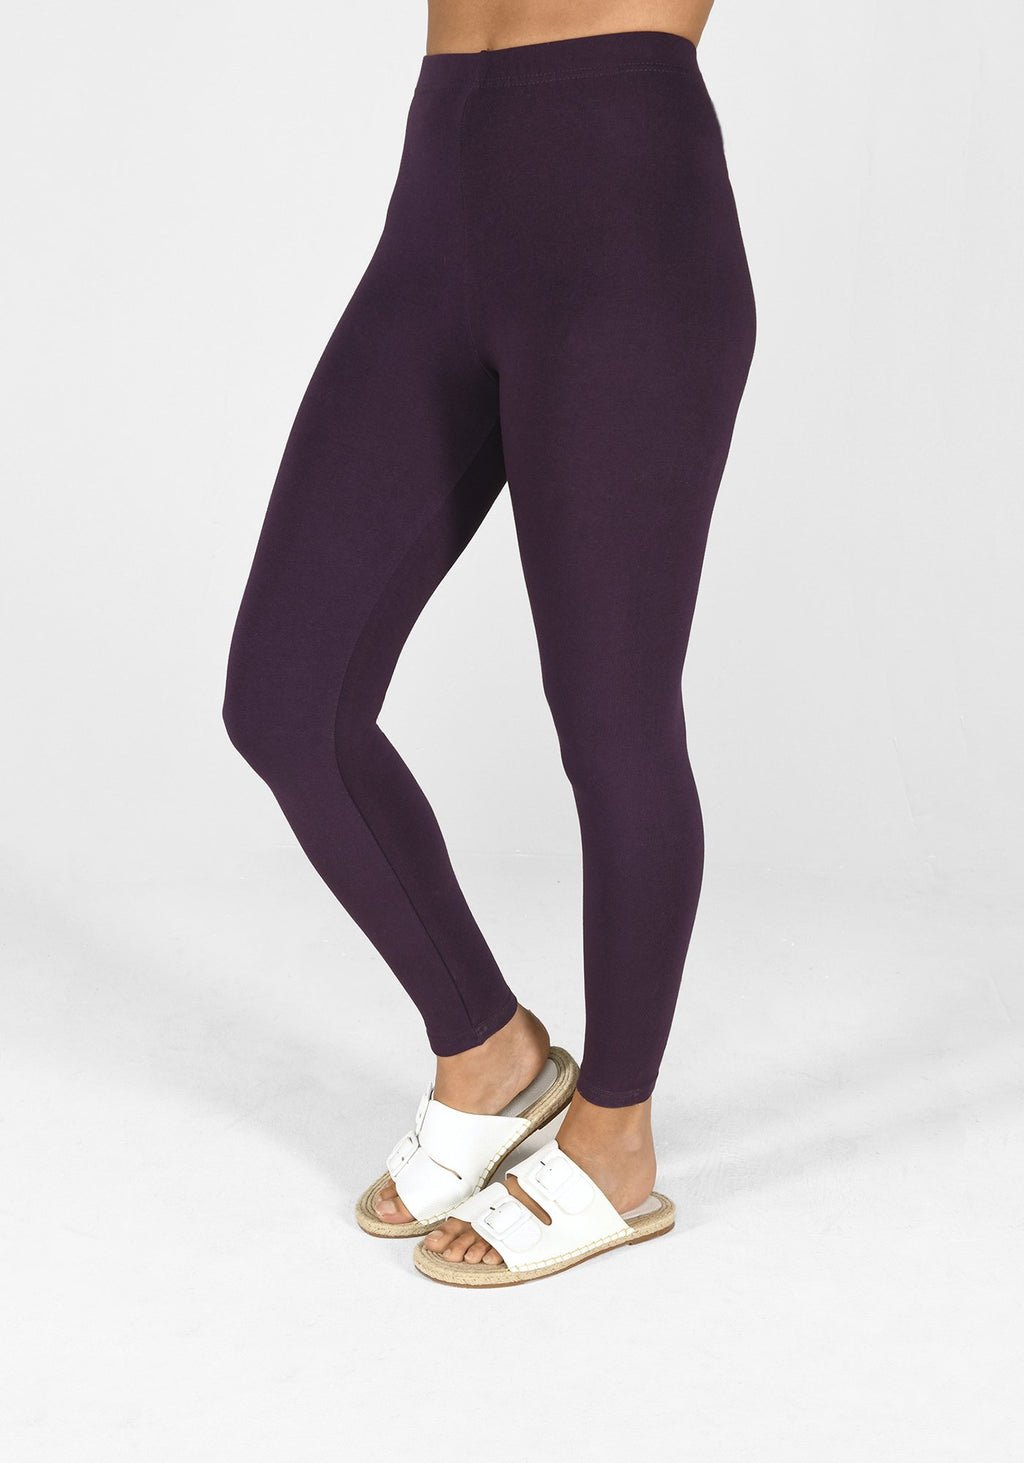 acai purple classic leggings 1